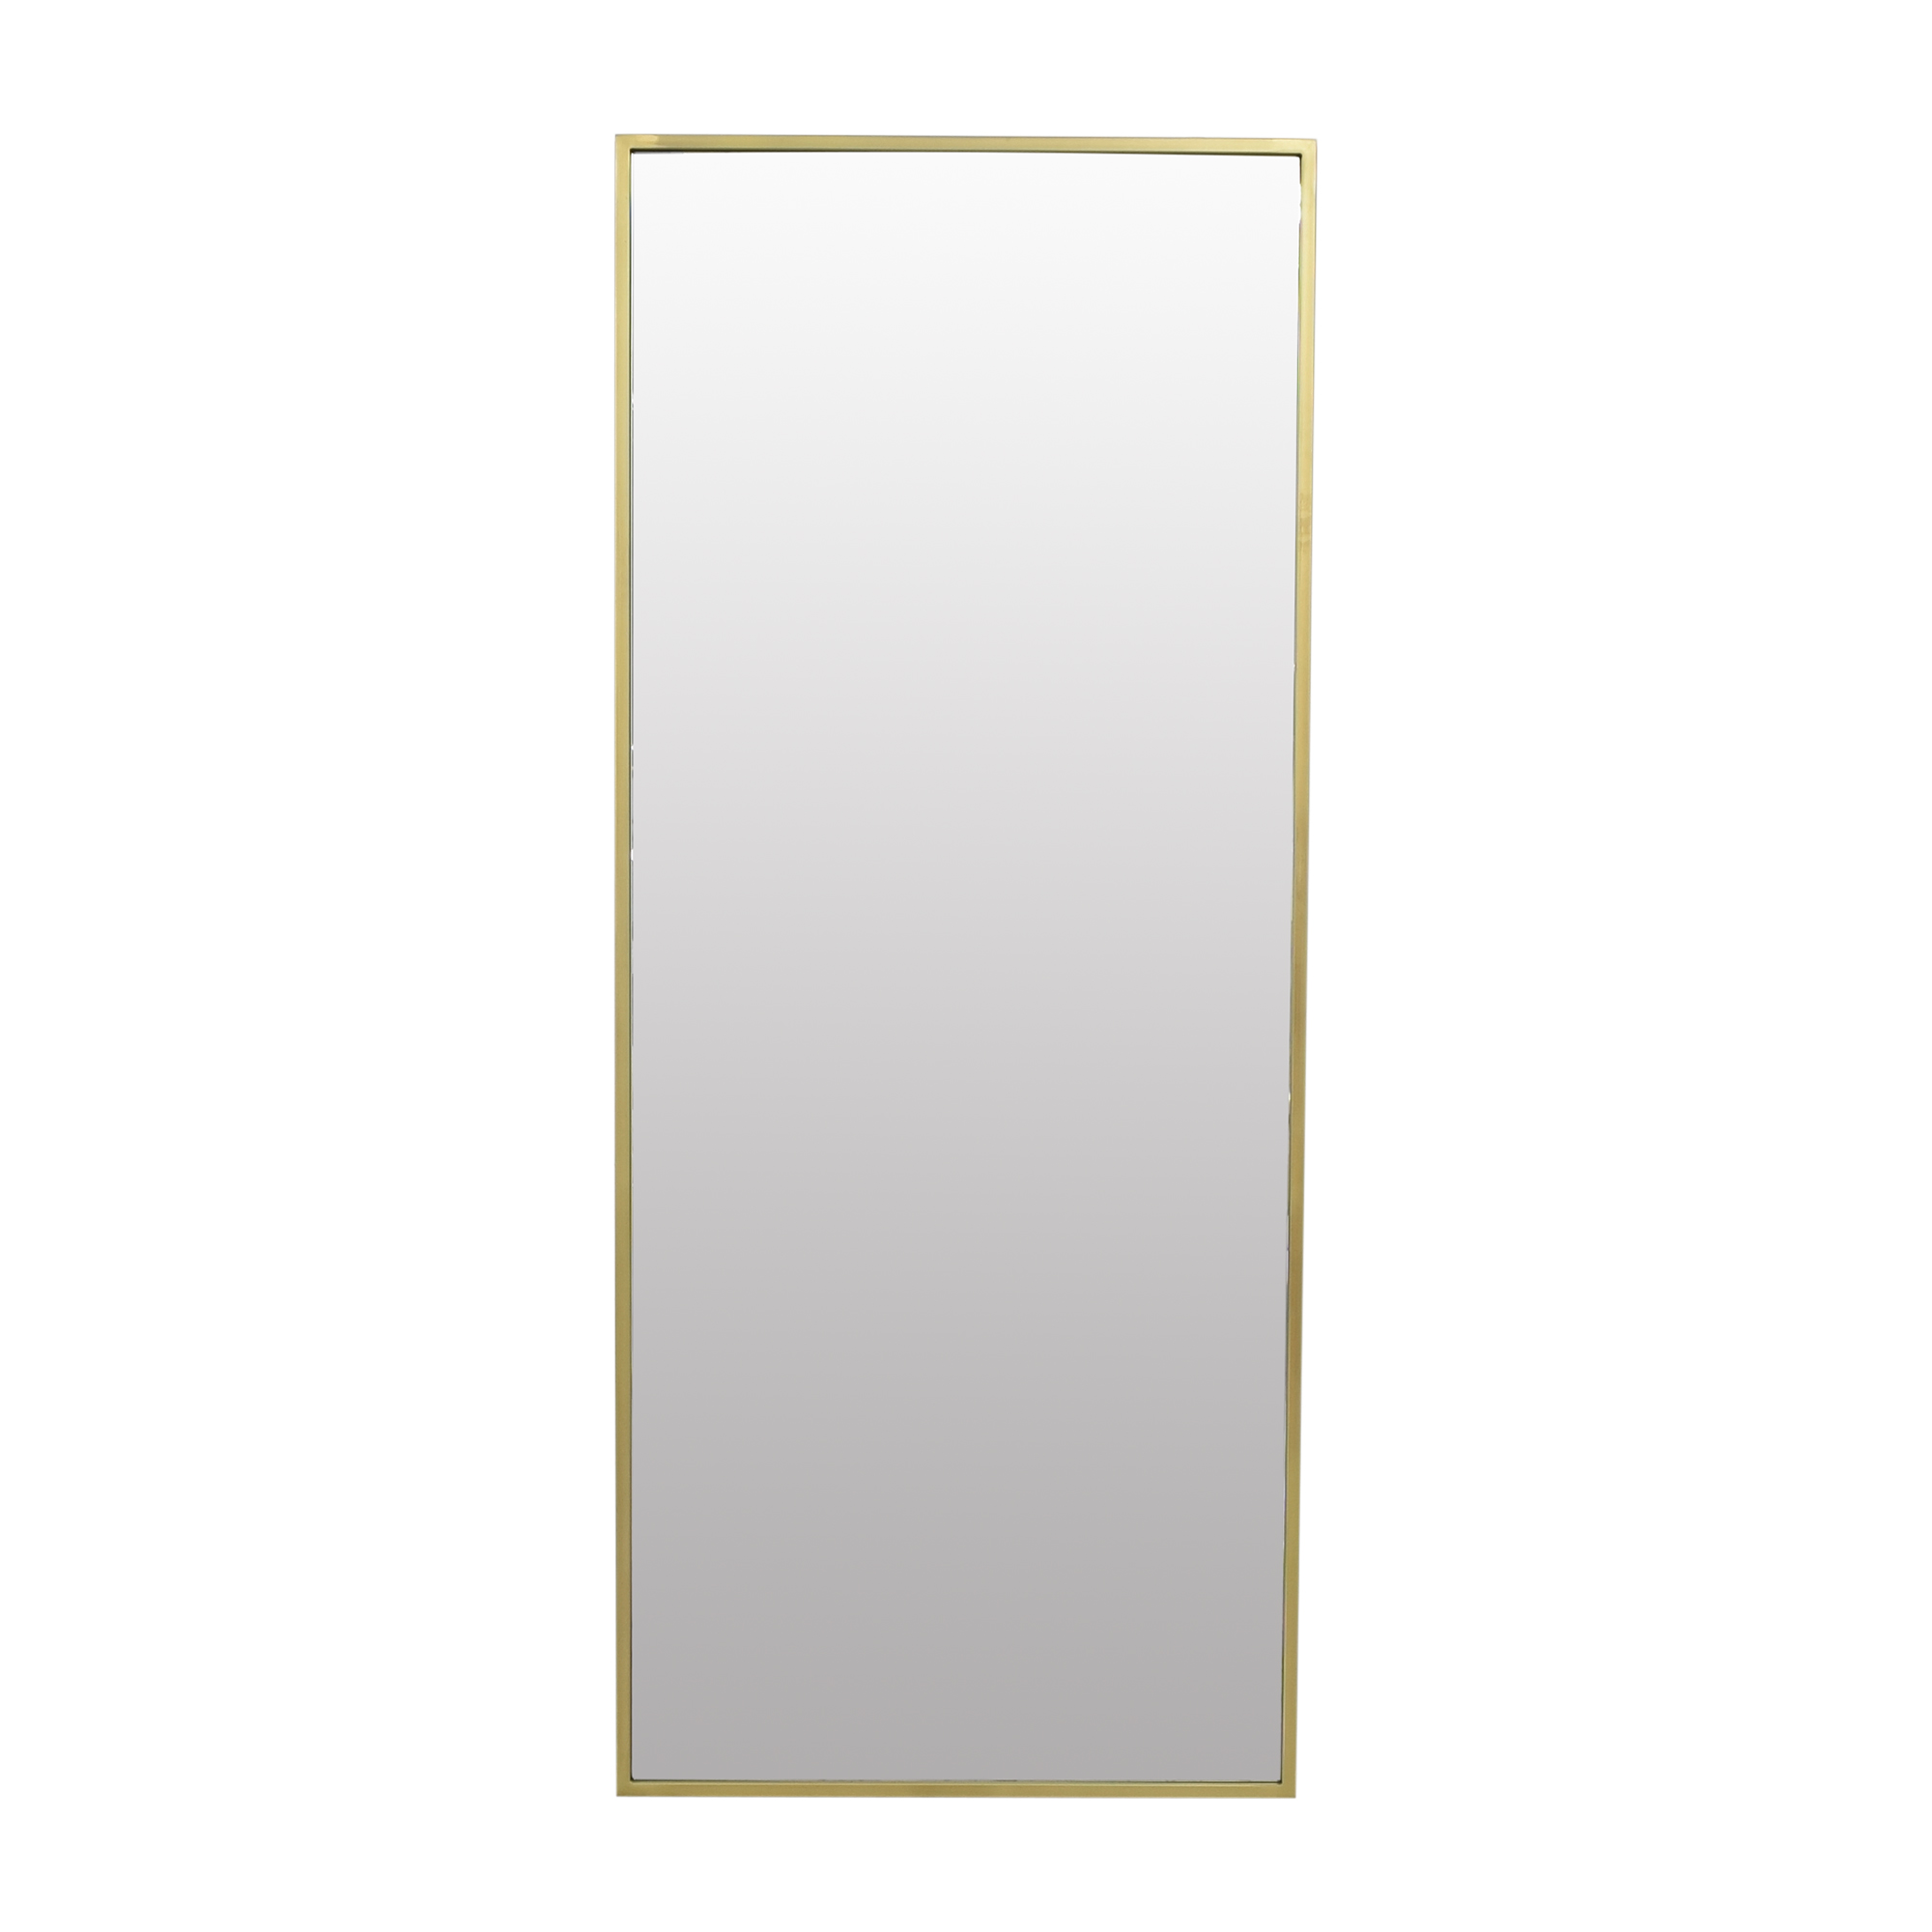 West Elm West Elm Metal Framed Floor Mirror Decor